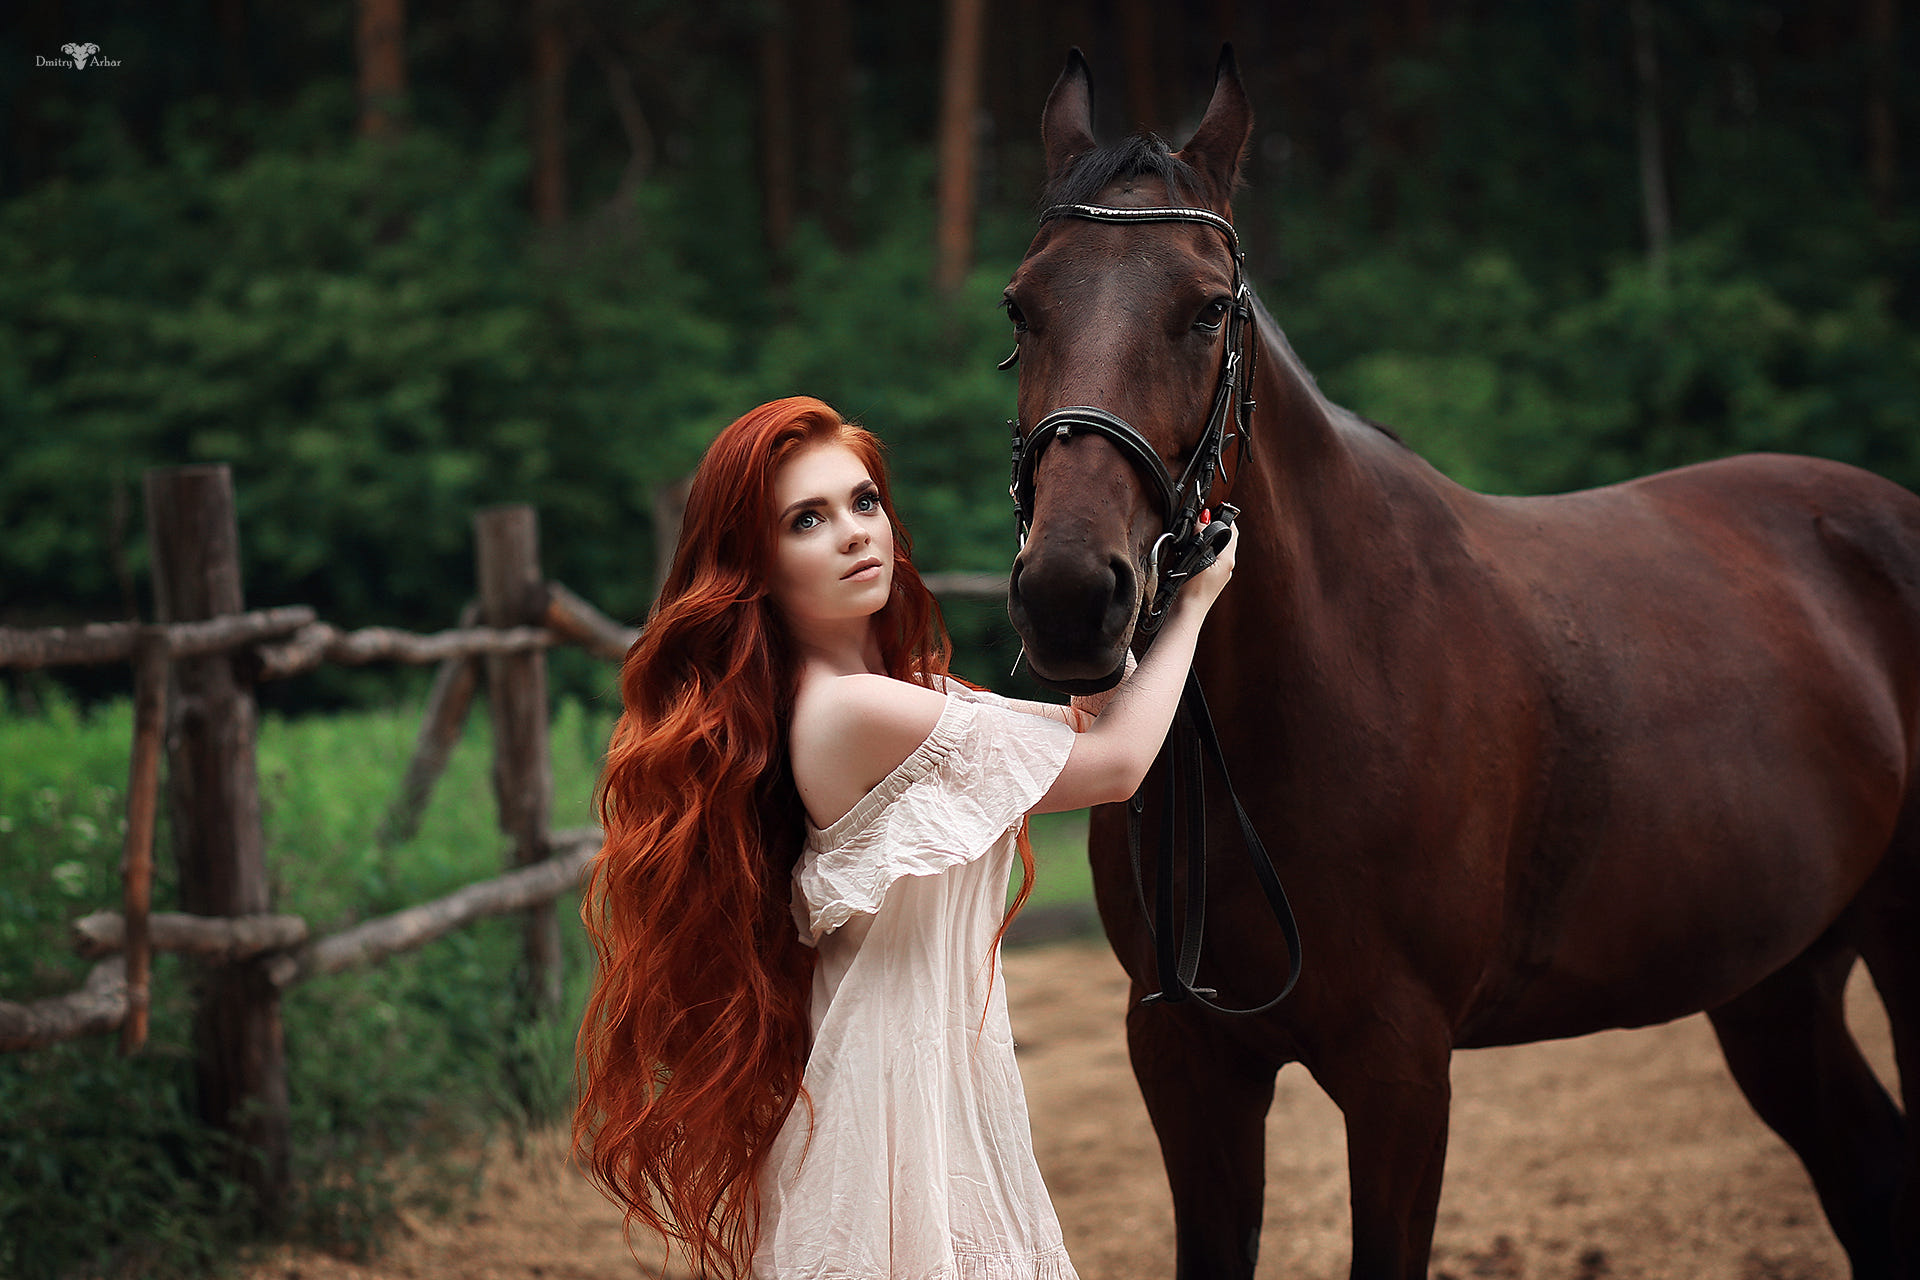 Animal And Girl Hd Porn horse girl porn pic - eporner